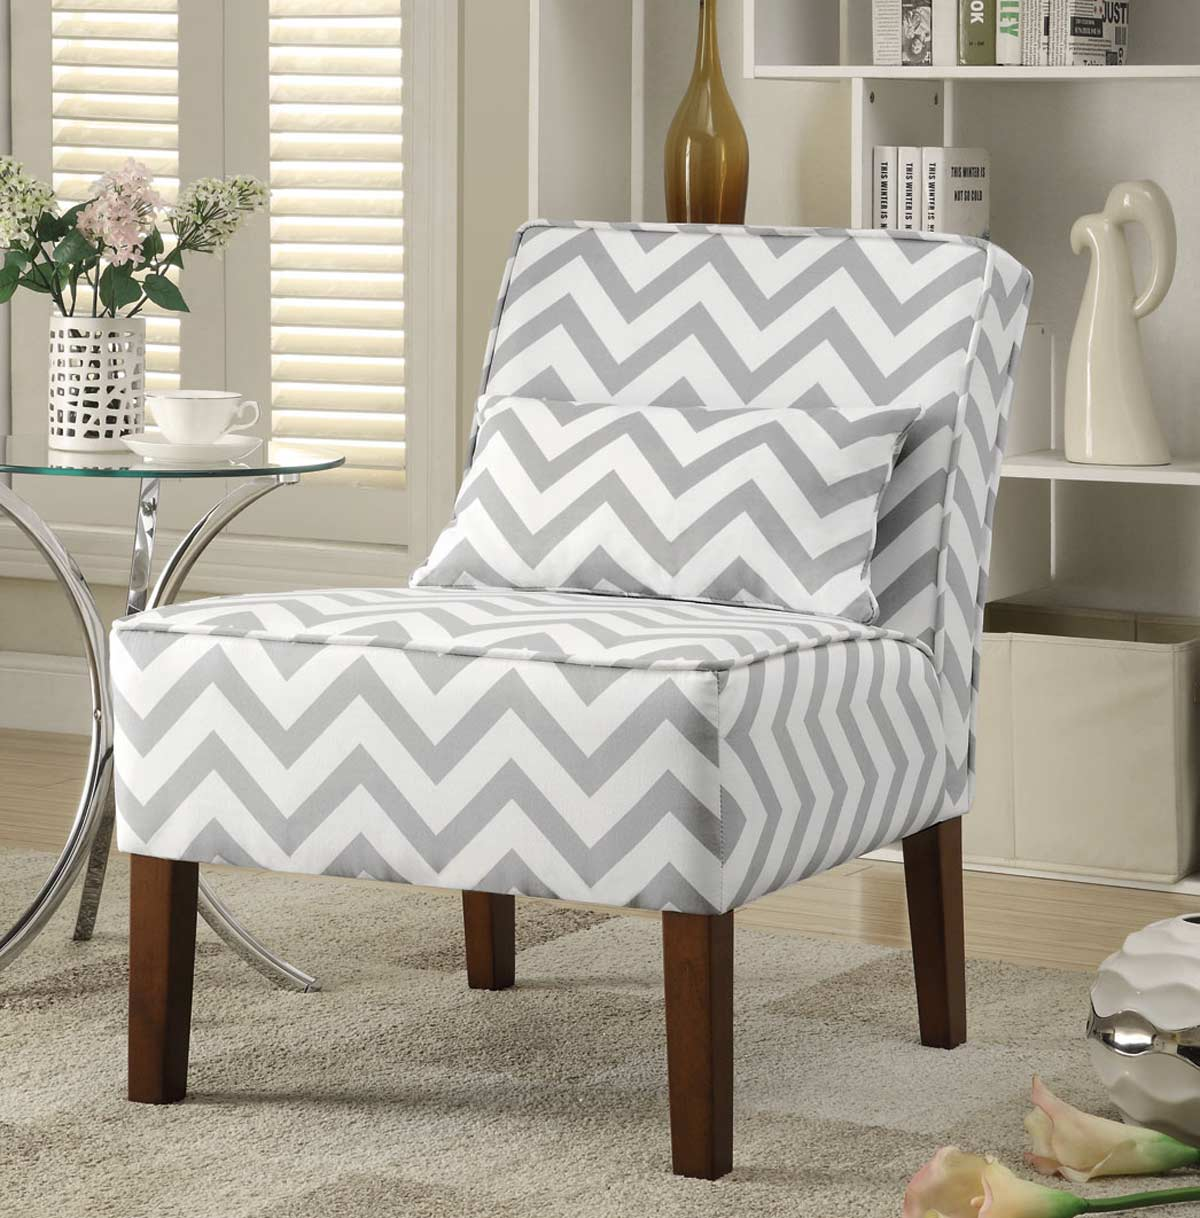 Coaster 902259 Accent Chair - Grey/white